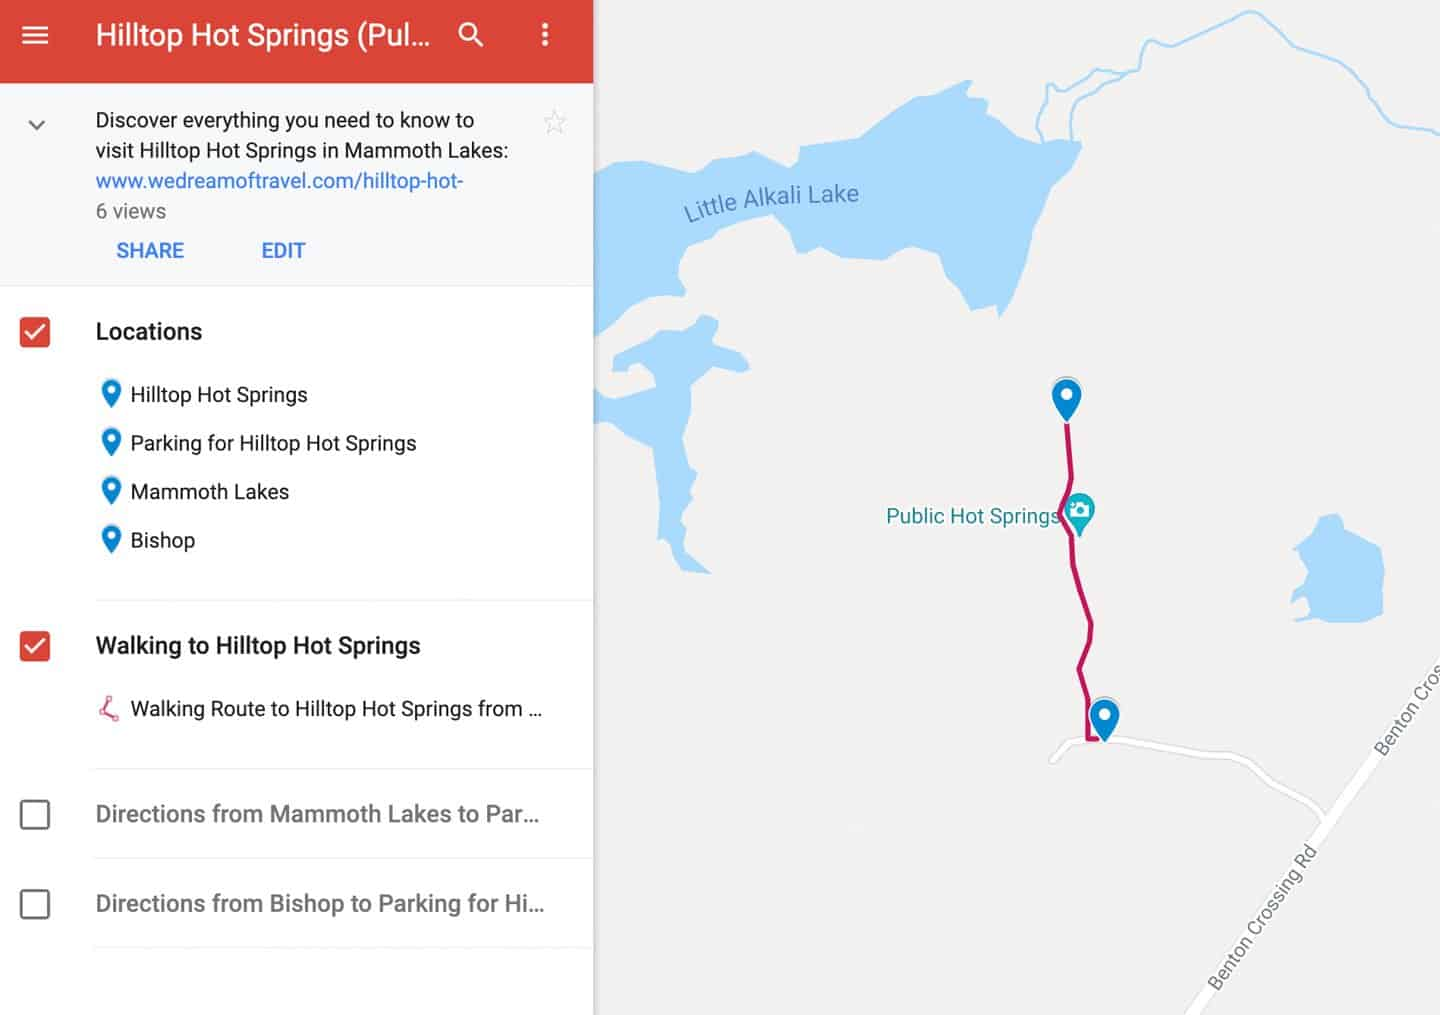 Google Map of Hilltop Hot Springs with walking and driving directions.